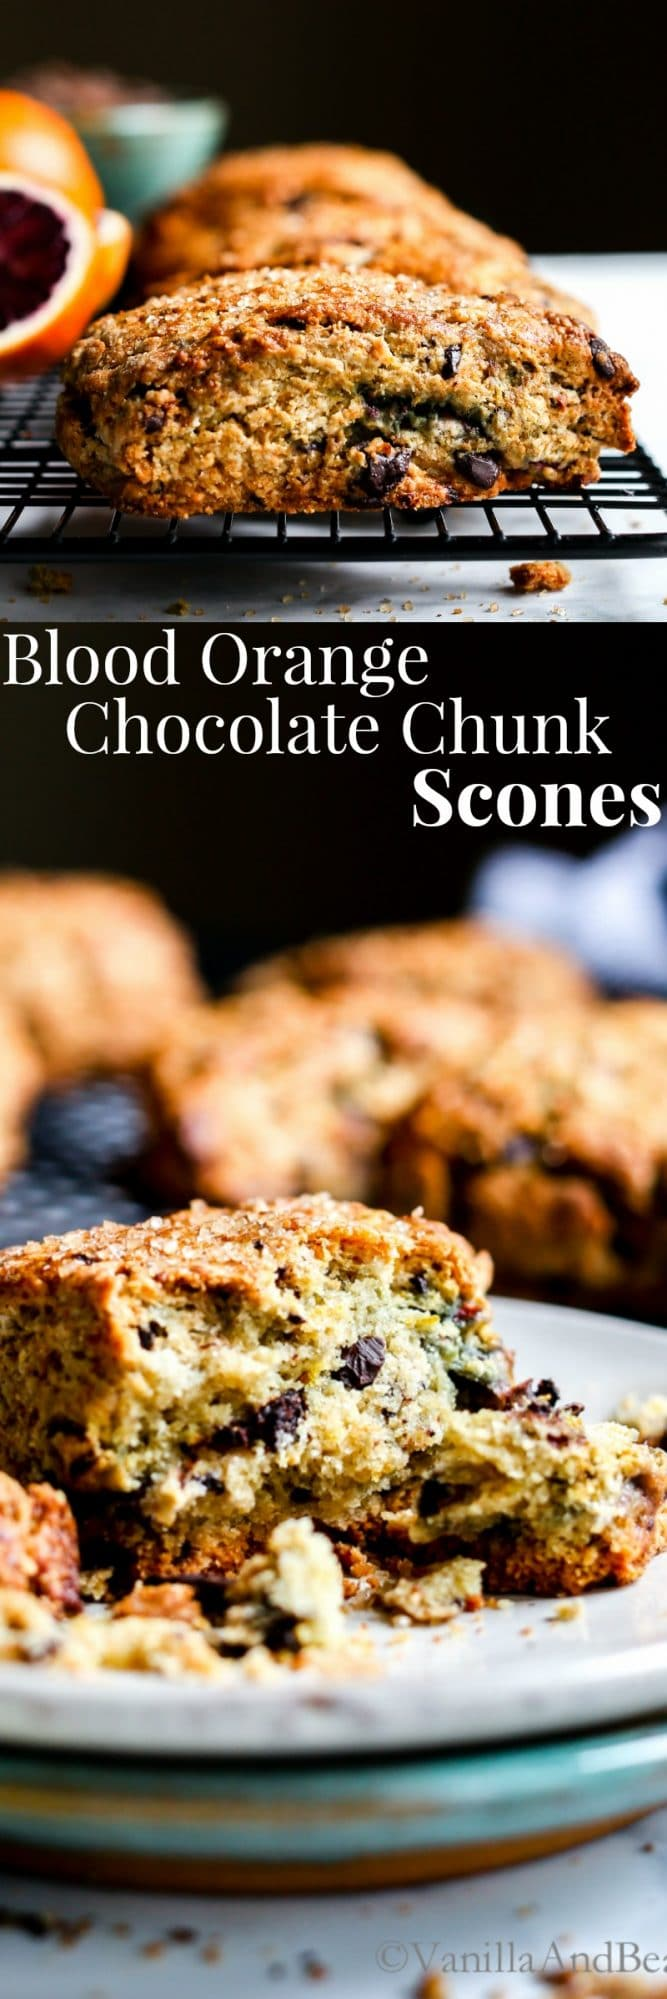 Blood Orange Chocolate Chunk Scones - Vanilla And Bean